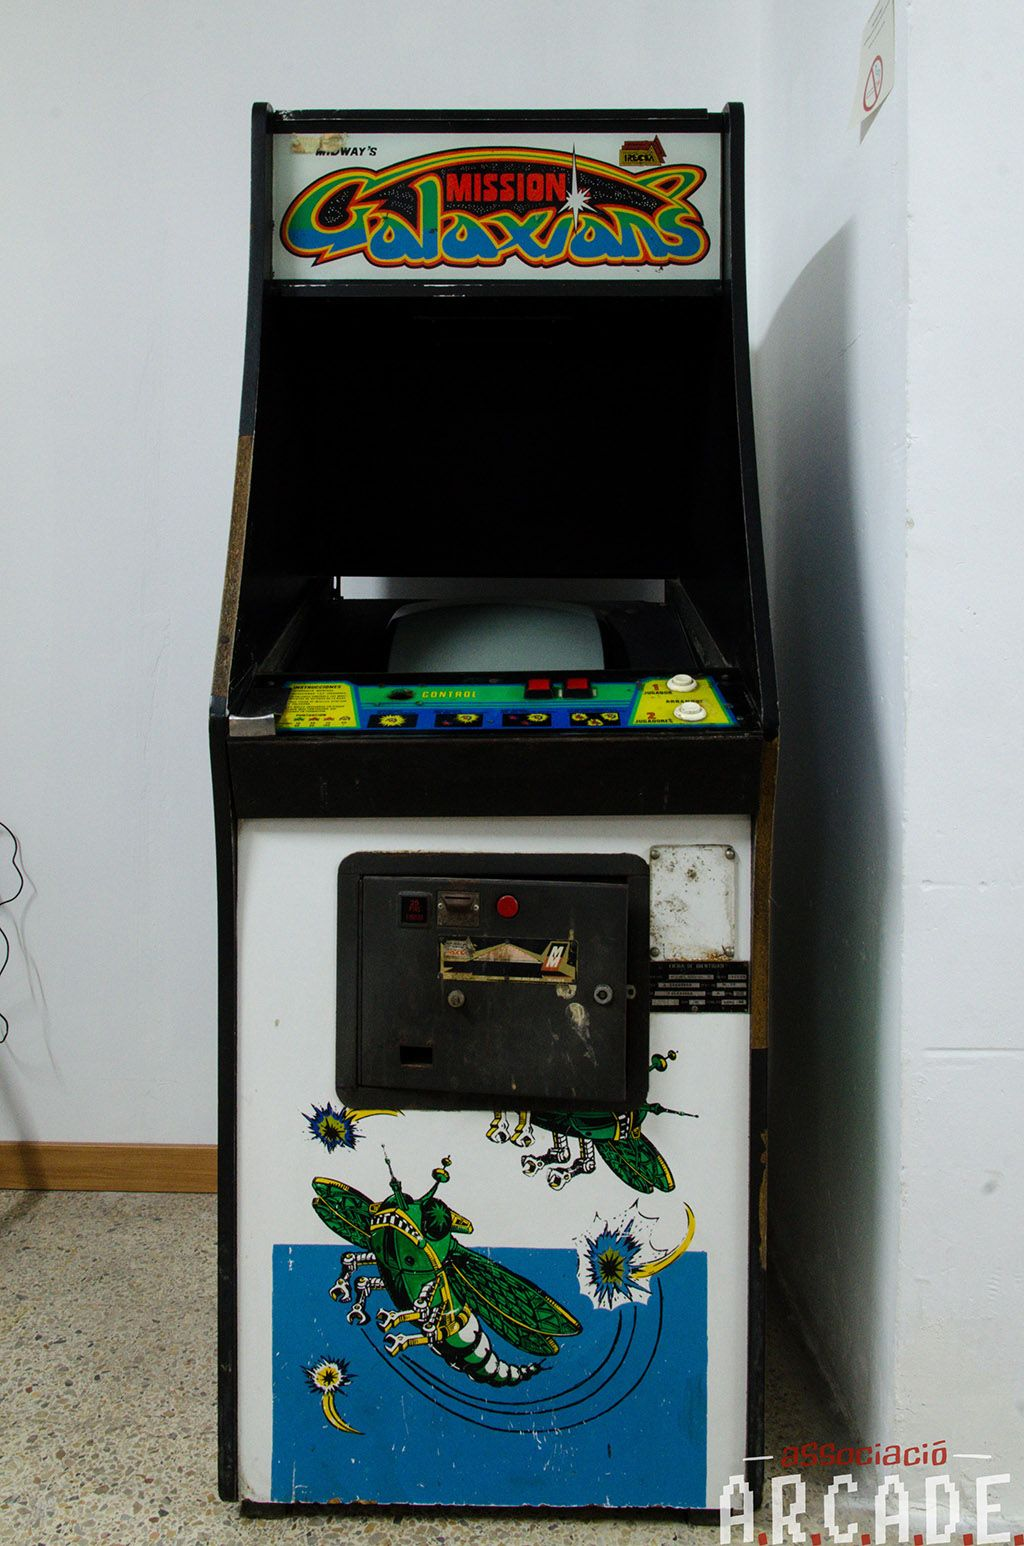 Mueble Arcade Mission Galaxians De Irecsa Máquina Recreativa